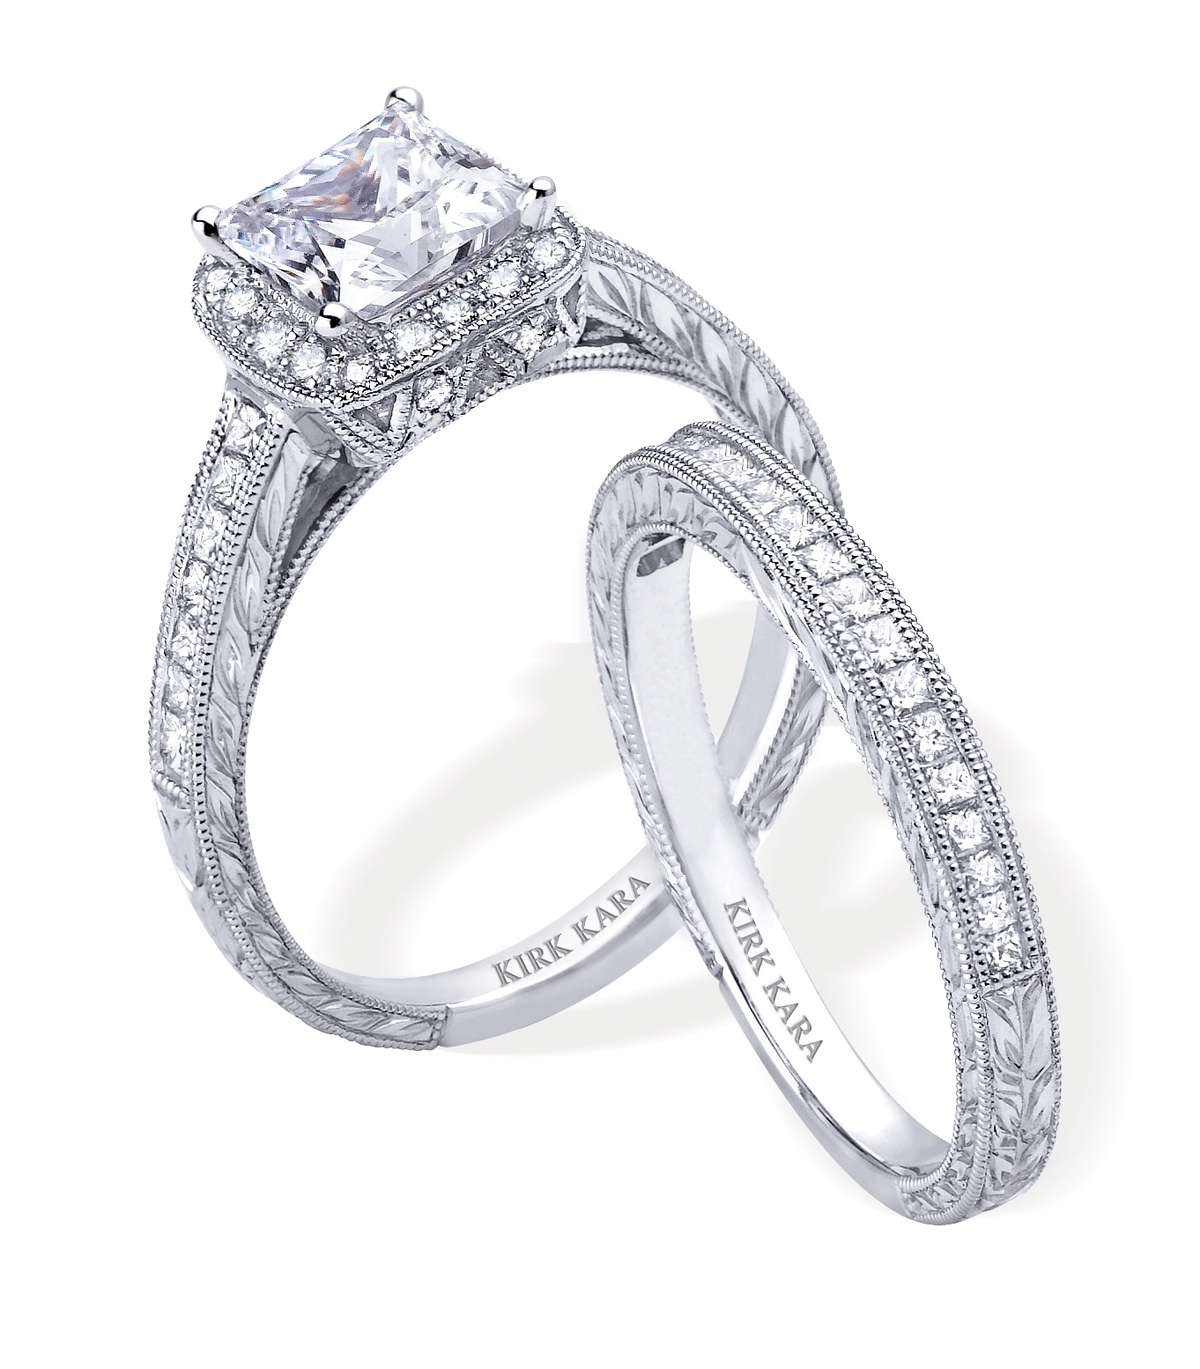 Solitaire Engagement Rings With Weding Band 027 - Solitaire Engagement Rings With Weding Band